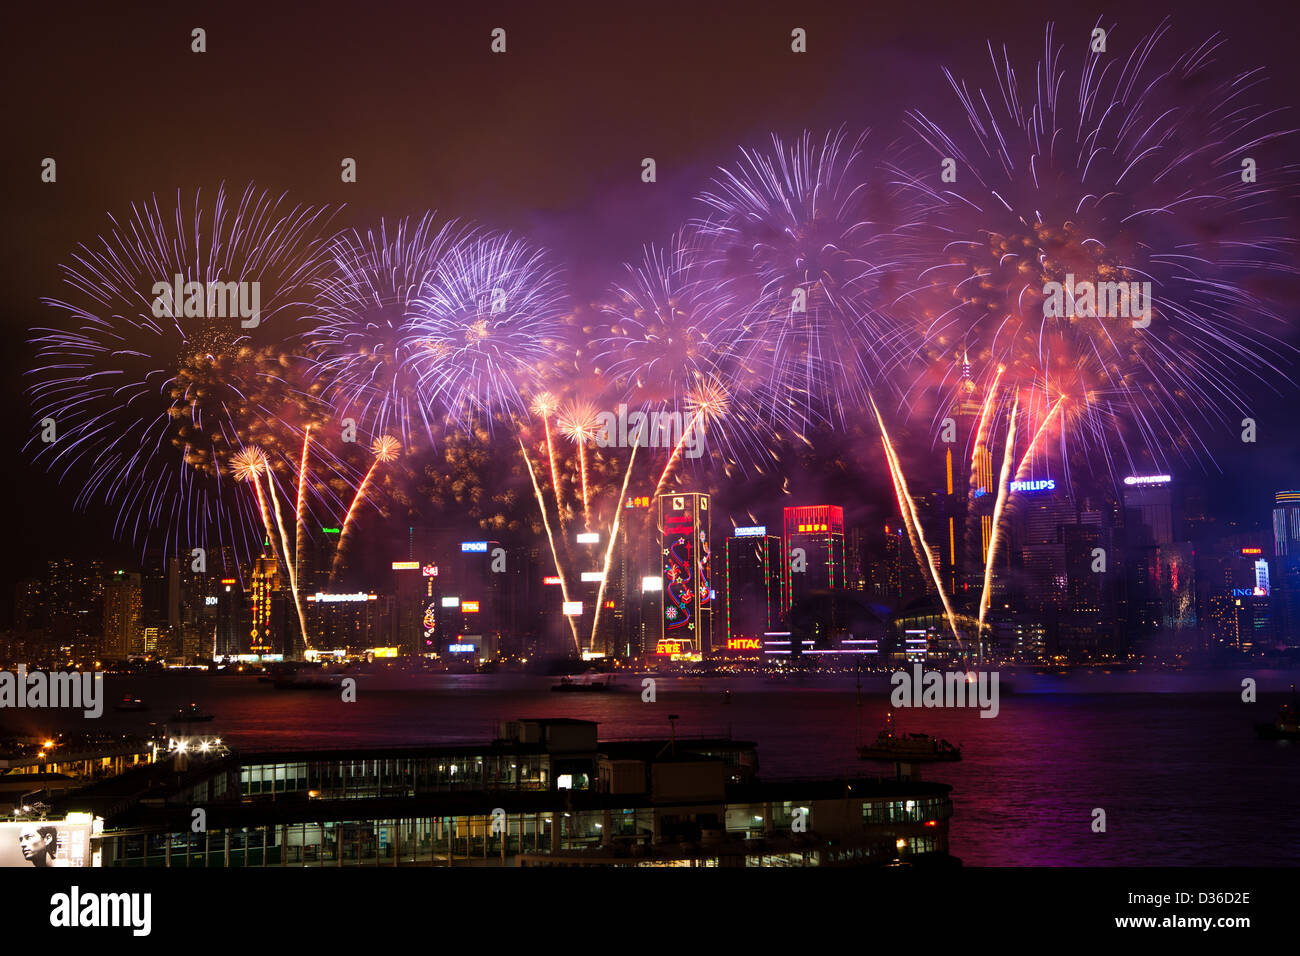 Firework show for Celebration of the Lunar New Year in Victoria Harbour of HKSAR. - Stock Image